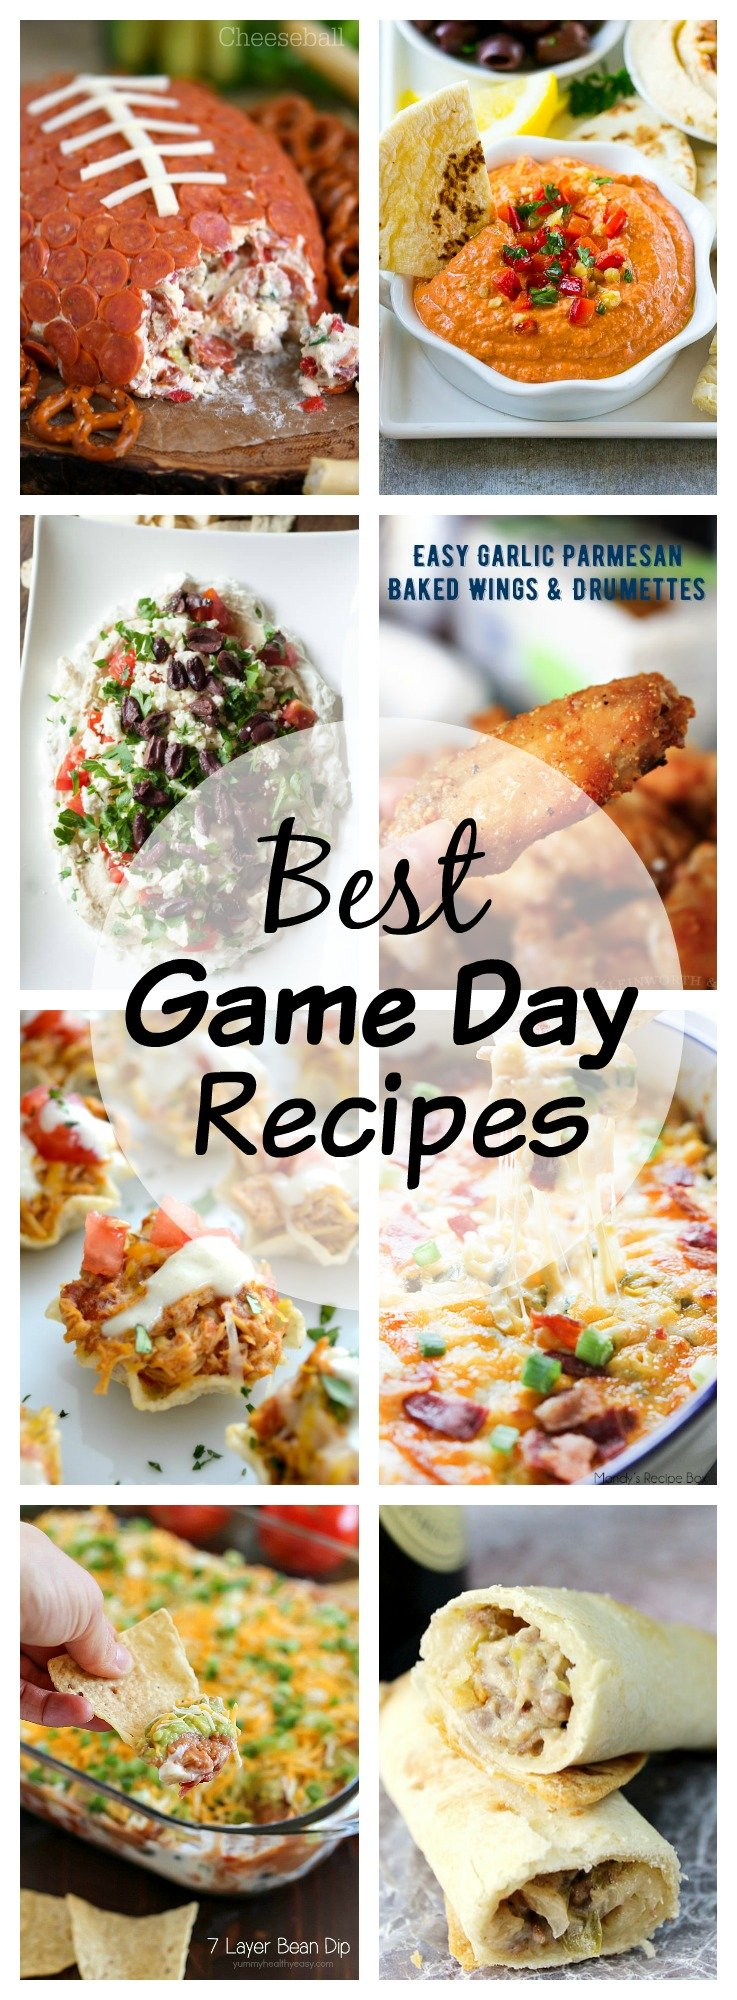 Last Minute Game Day Recipes - didn't plan anything, don't worry! Here are the BEST game Day Recipes that can be made at the last minute!